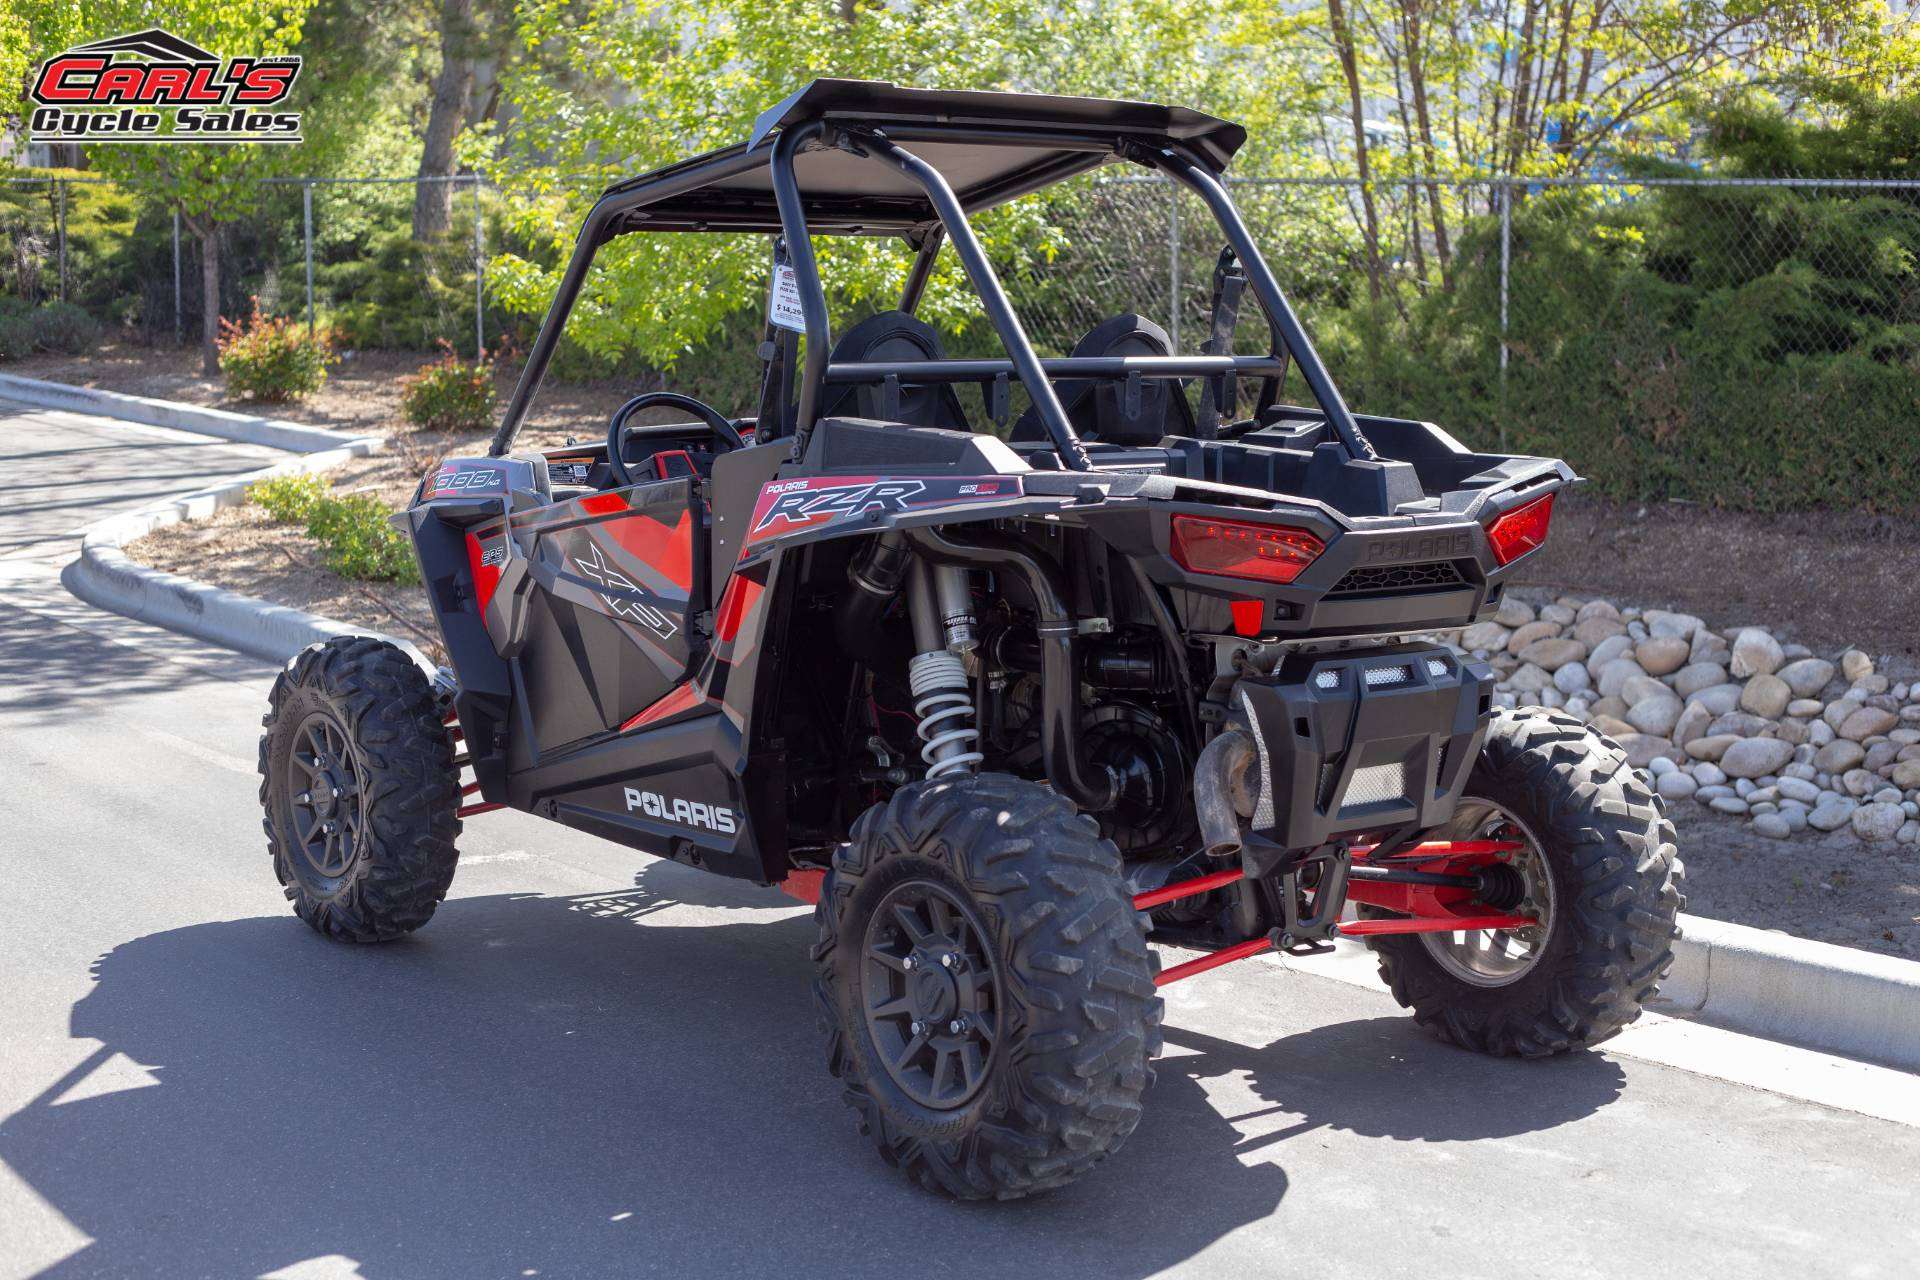 2017 Polaris RZR XP 1000 EPS in Boise, Idaho - Photo 6